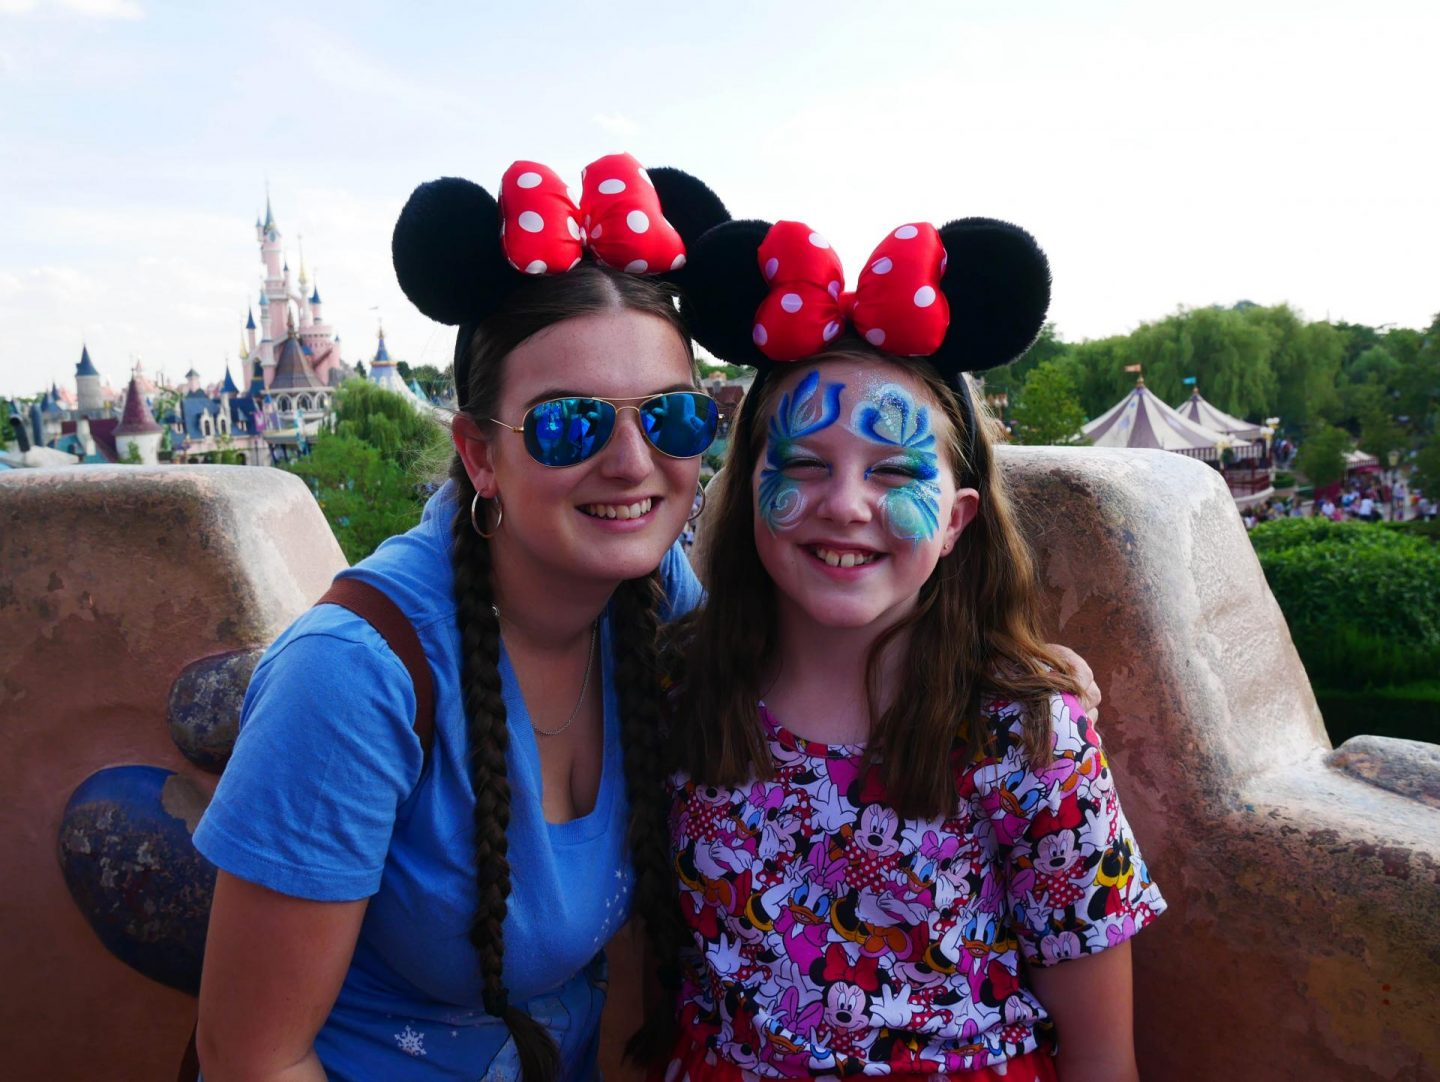 disneyland-paris-my-22nd-birthday-trip-rachel-nicole-uk-travel-disney-blogger-27